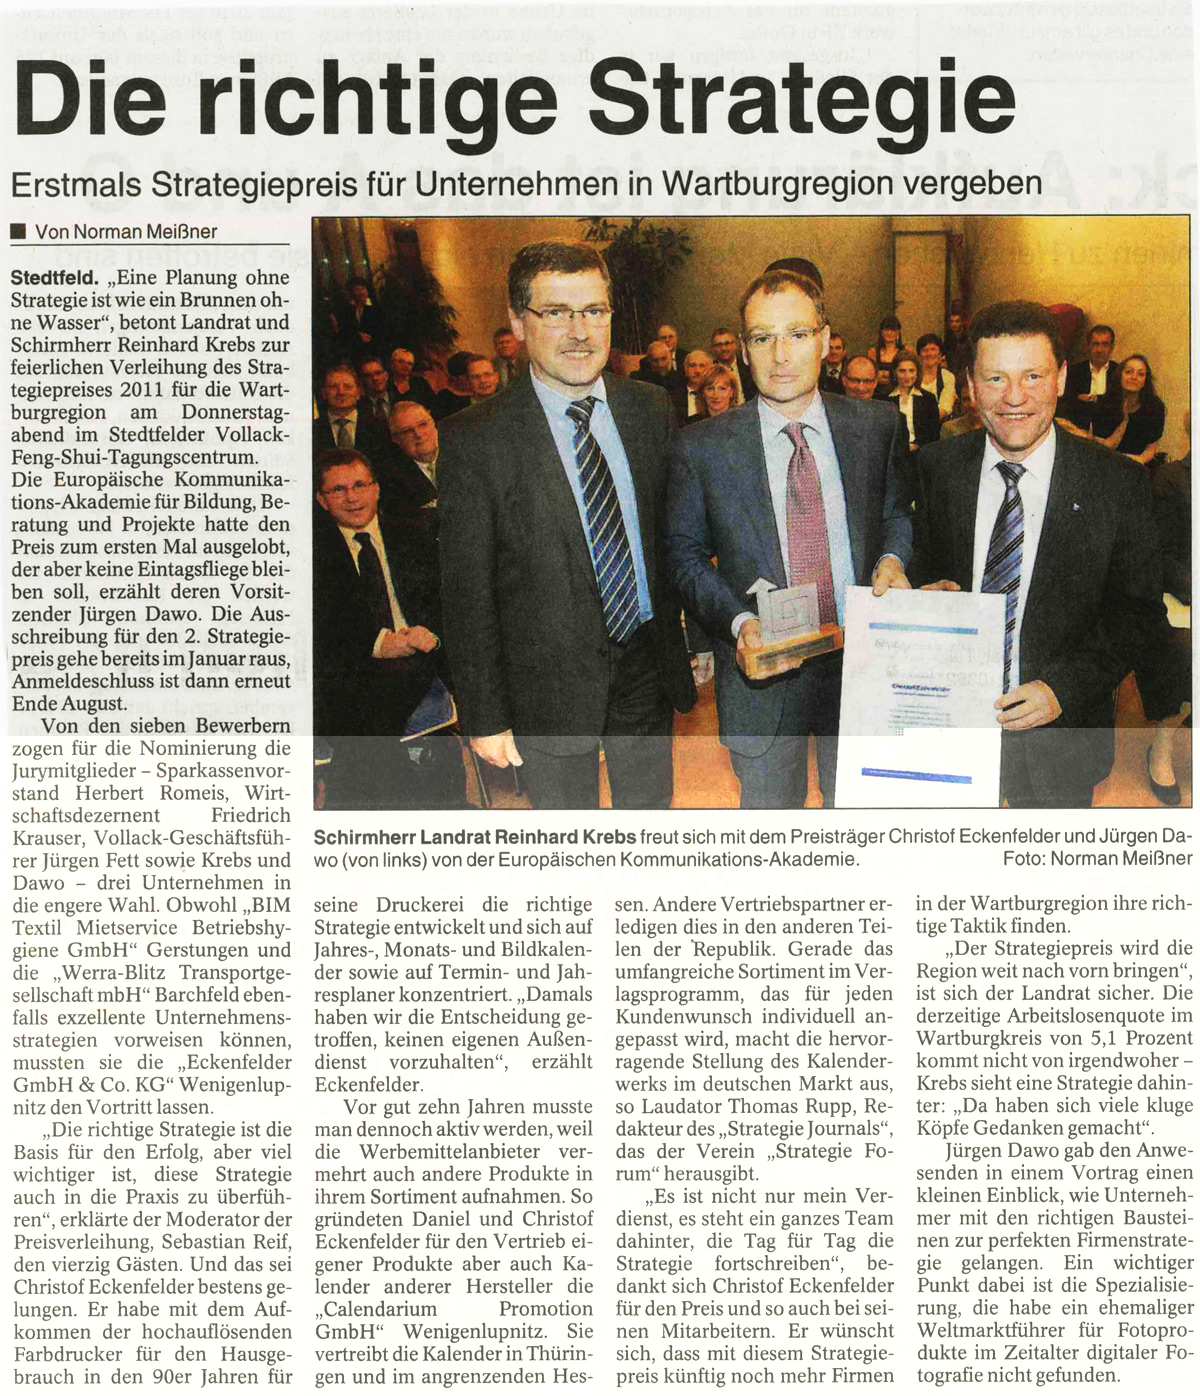 Strategiepreis 2012 der Wartburgregion